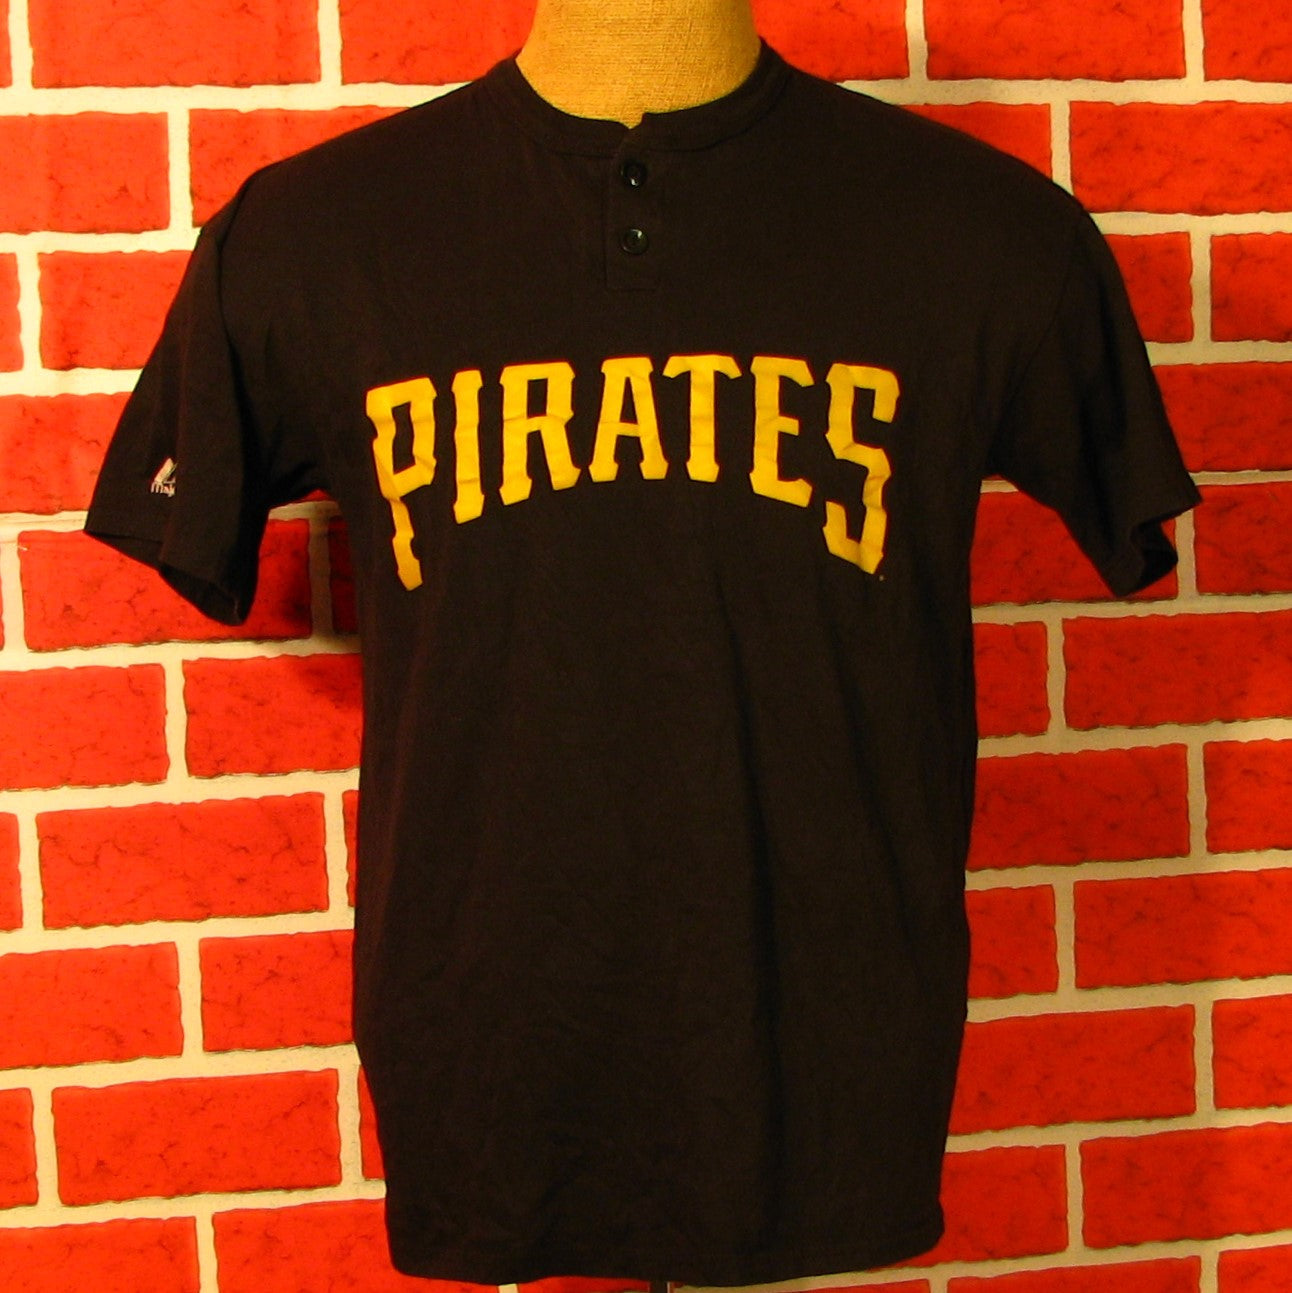 Pittsburg Pirates # 12 Jersey